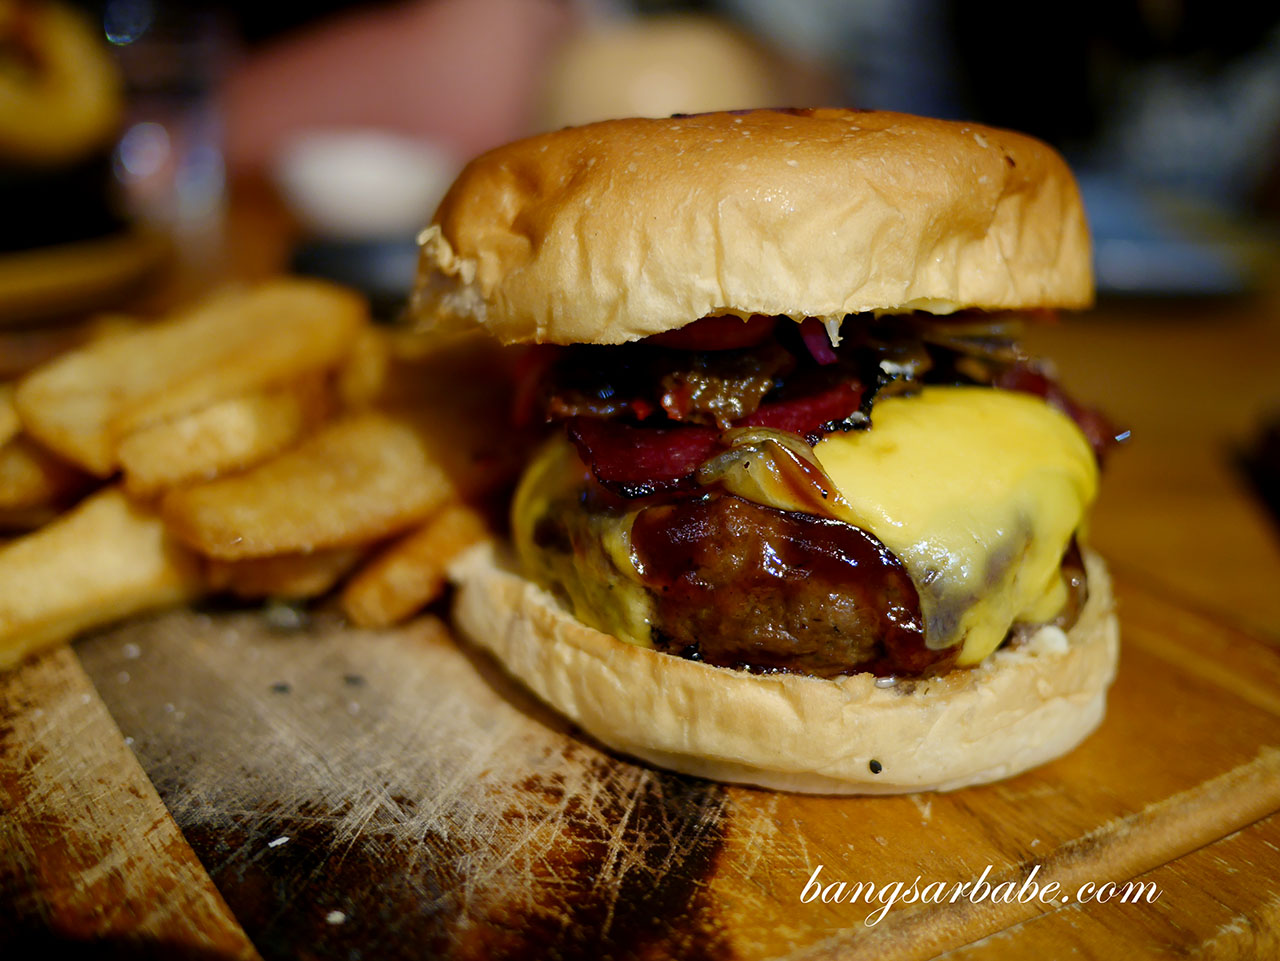 The Brooklyn Burger